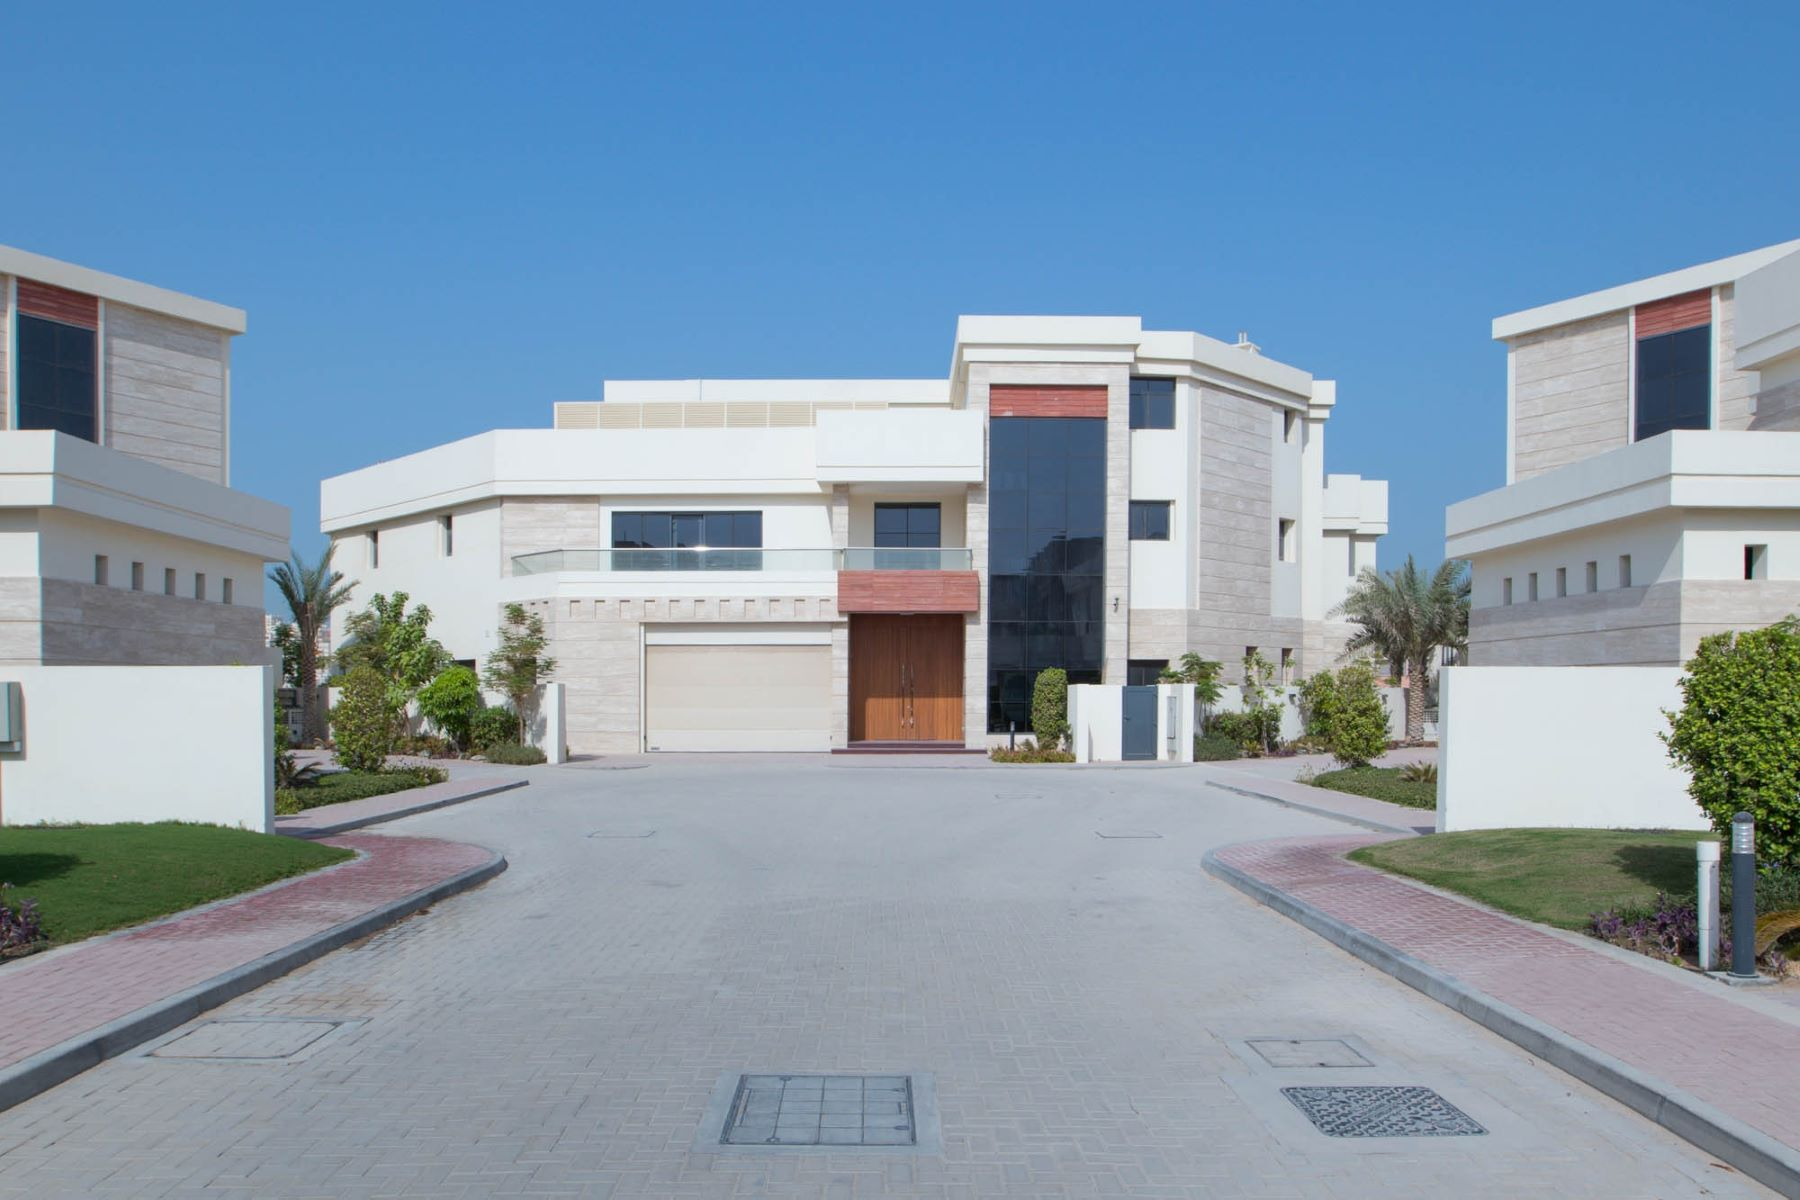 Other Residential Homes for Sale at 4 Villa Compound Bulk Brand New Palm Jumeirah Dubai, Dubai United Arab Emirates